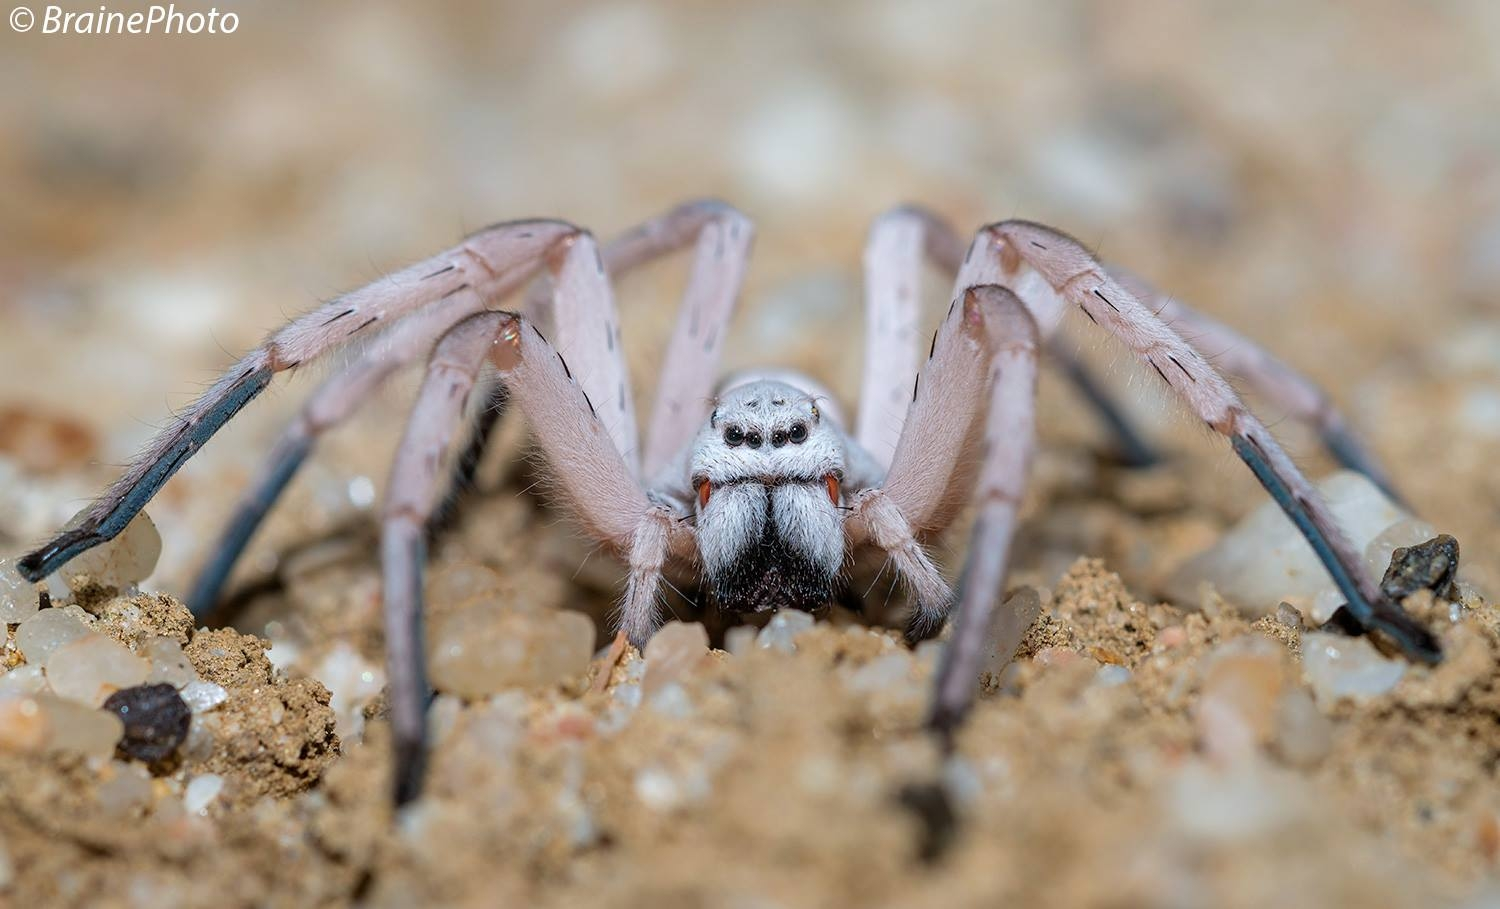 Our Desert Night Walks take you into the gravel plains on Swakopmund's outskirts. Exciting nocturnal animals that we find here include spiders, geckos, scorpions, snakes, gerbils and with great luck a Brown Hyena. This Dancing White Lady Spider is a popular find.